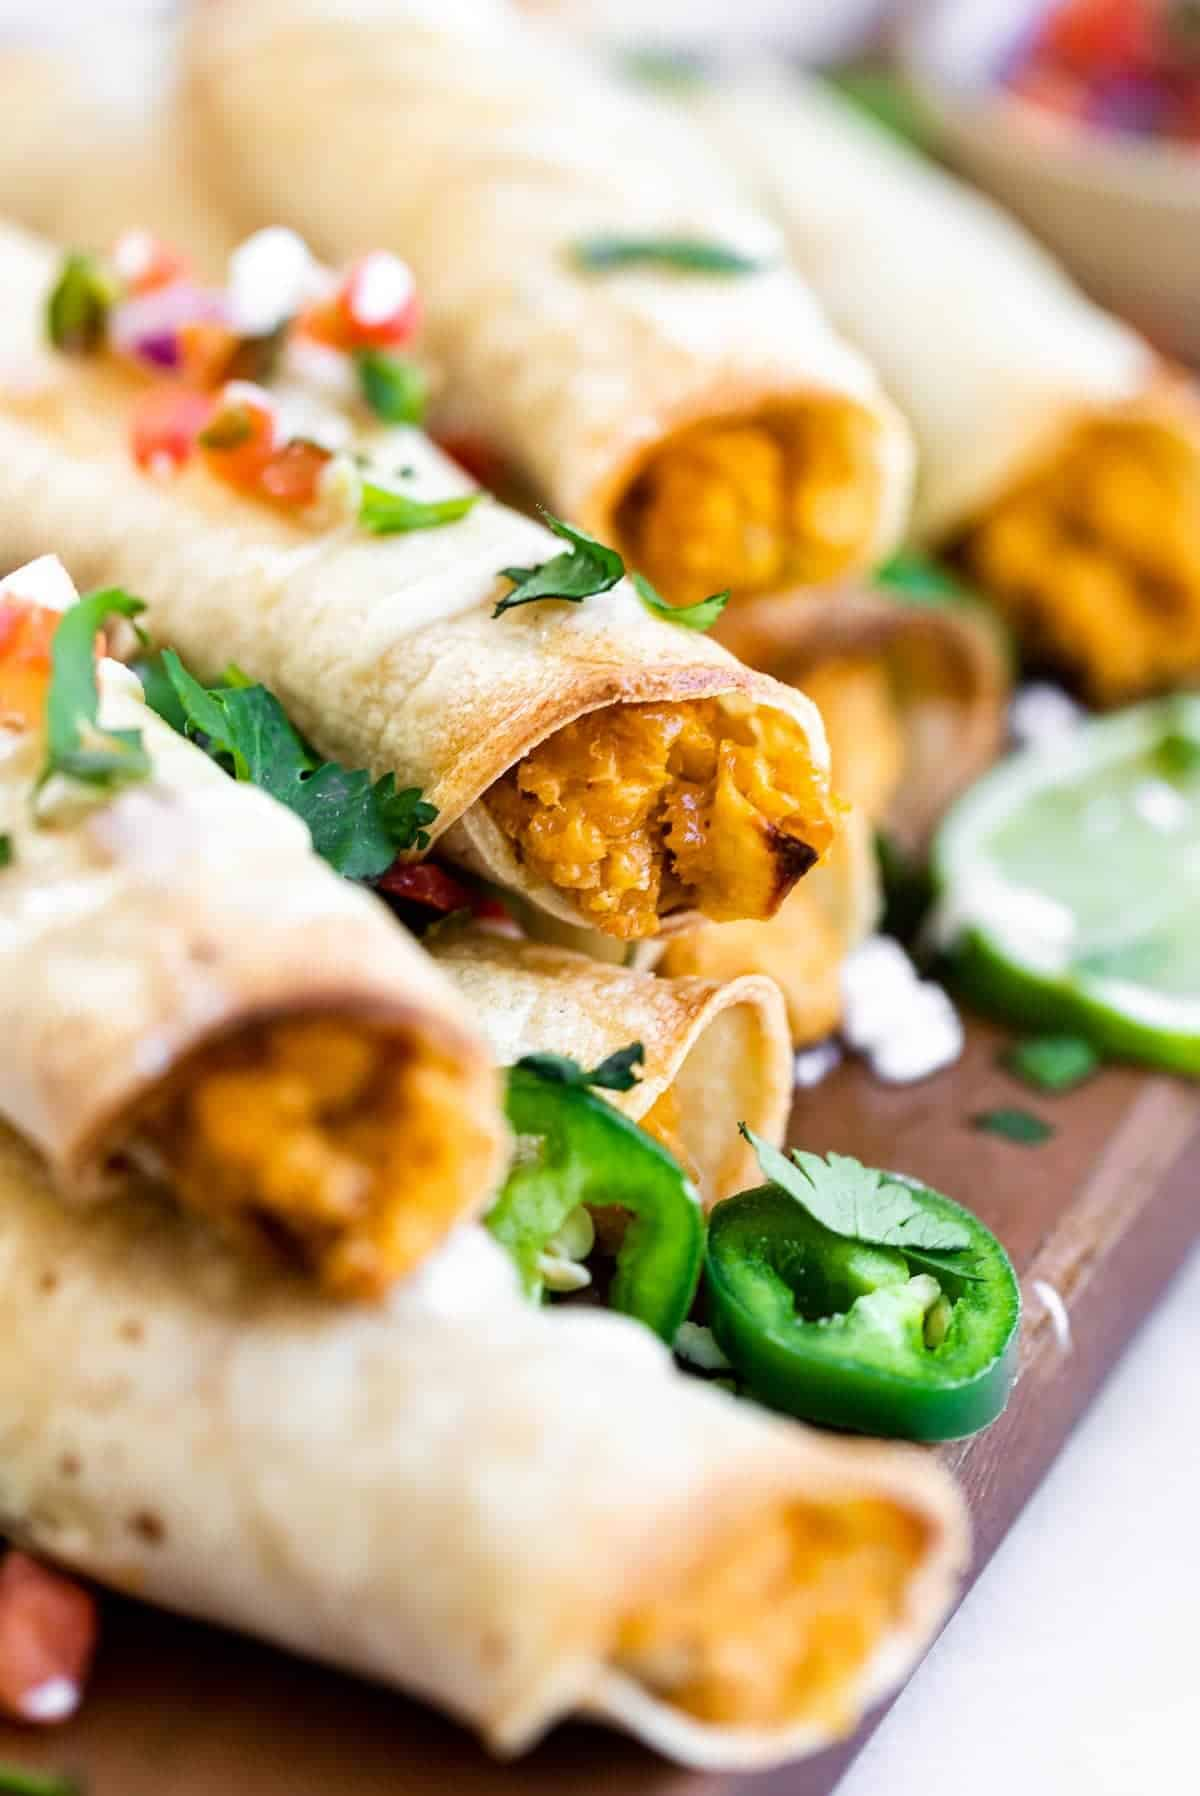 vegan chickpea taquitos on a wood board with jalapeno